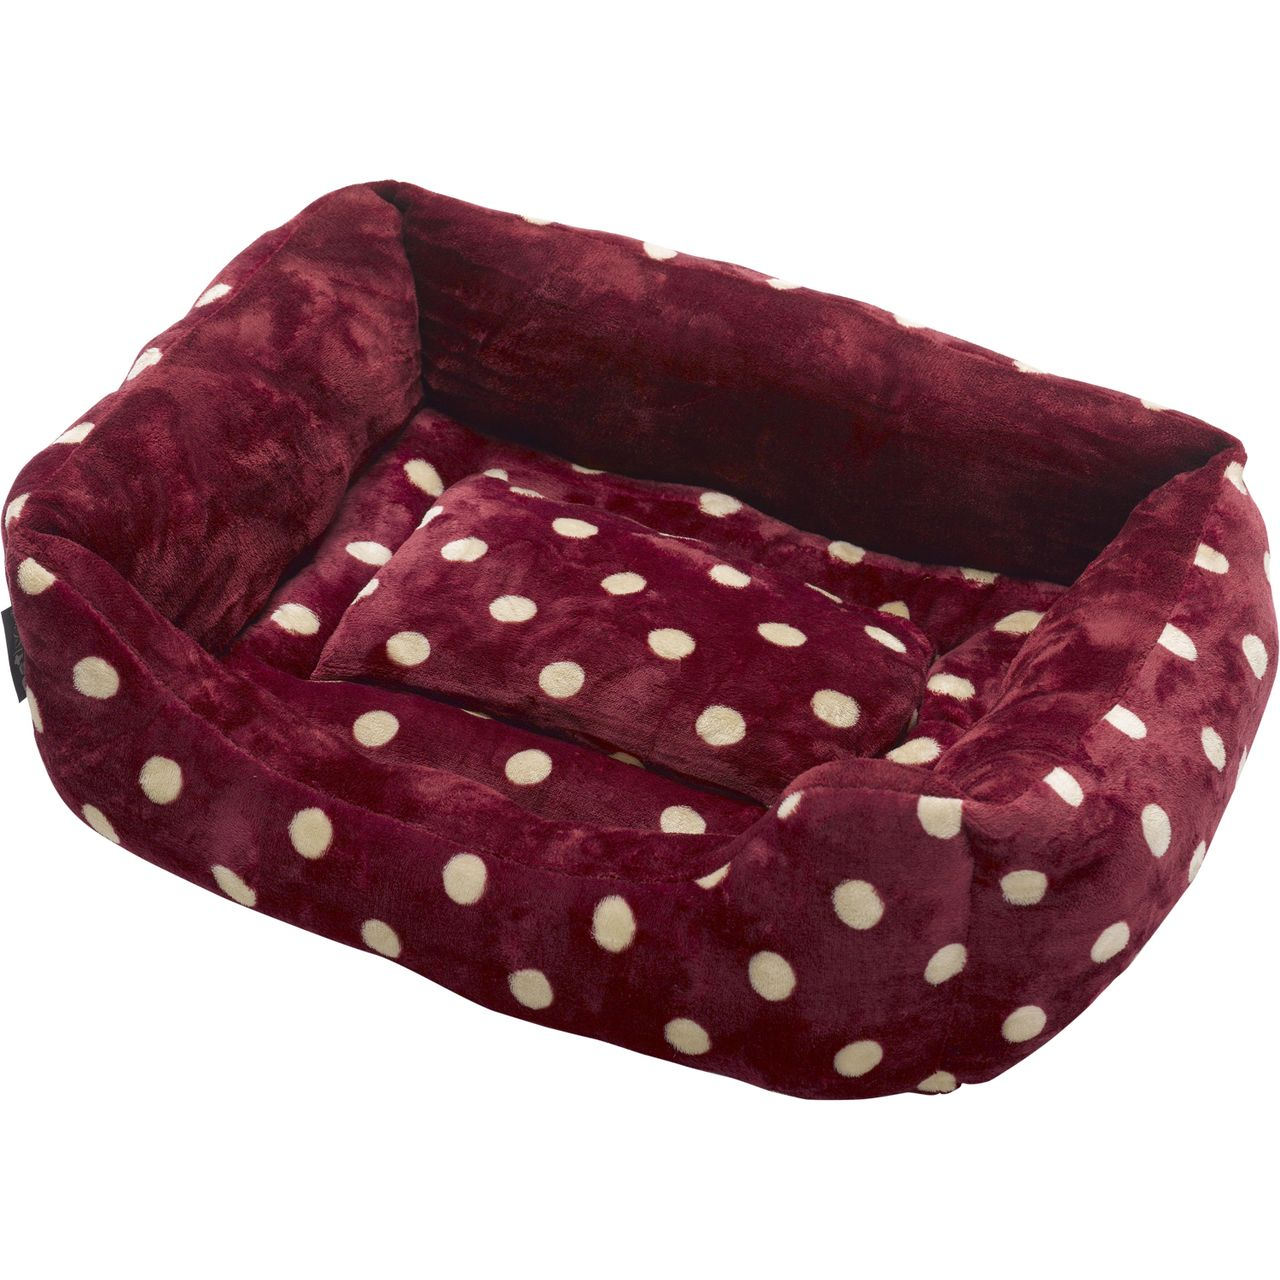 Petface Luxury Red & White Polka Dot Bed (Medium) Mill